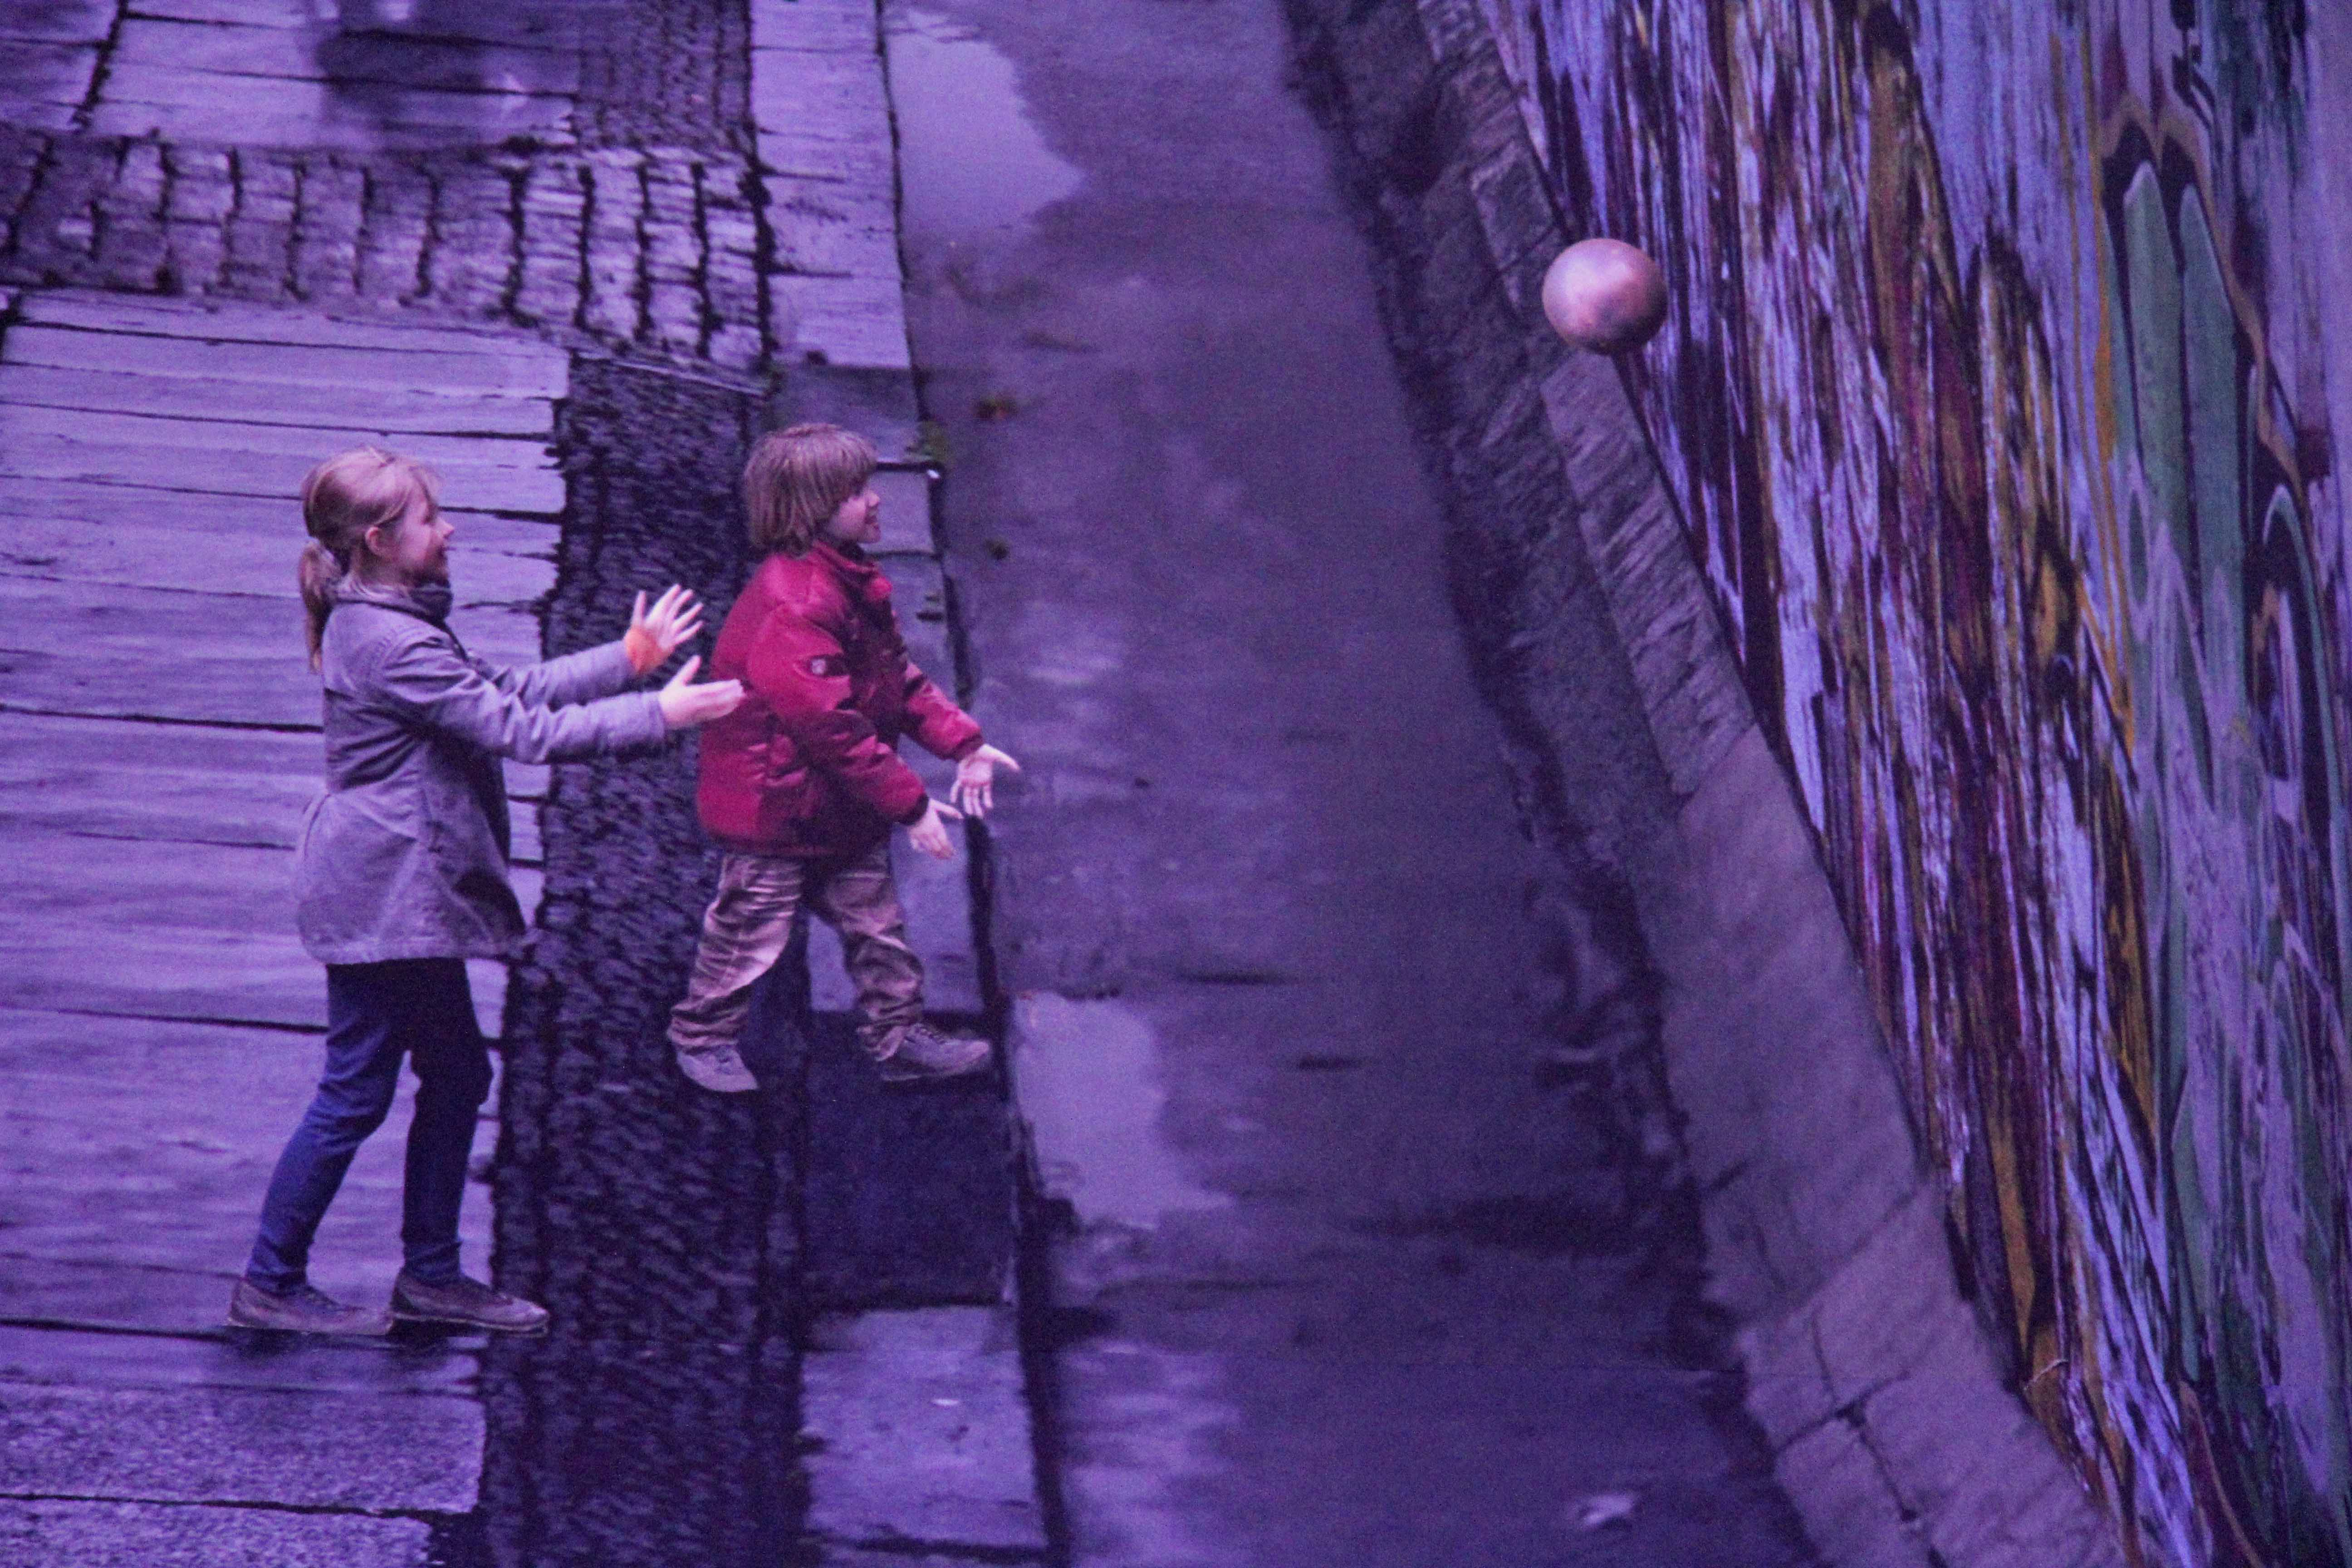 Children play a ball game up against the Wall in the Asisi Panorama: Die Mauer (The Wall) and exhibit near Checkpoint Charlie in Berlin